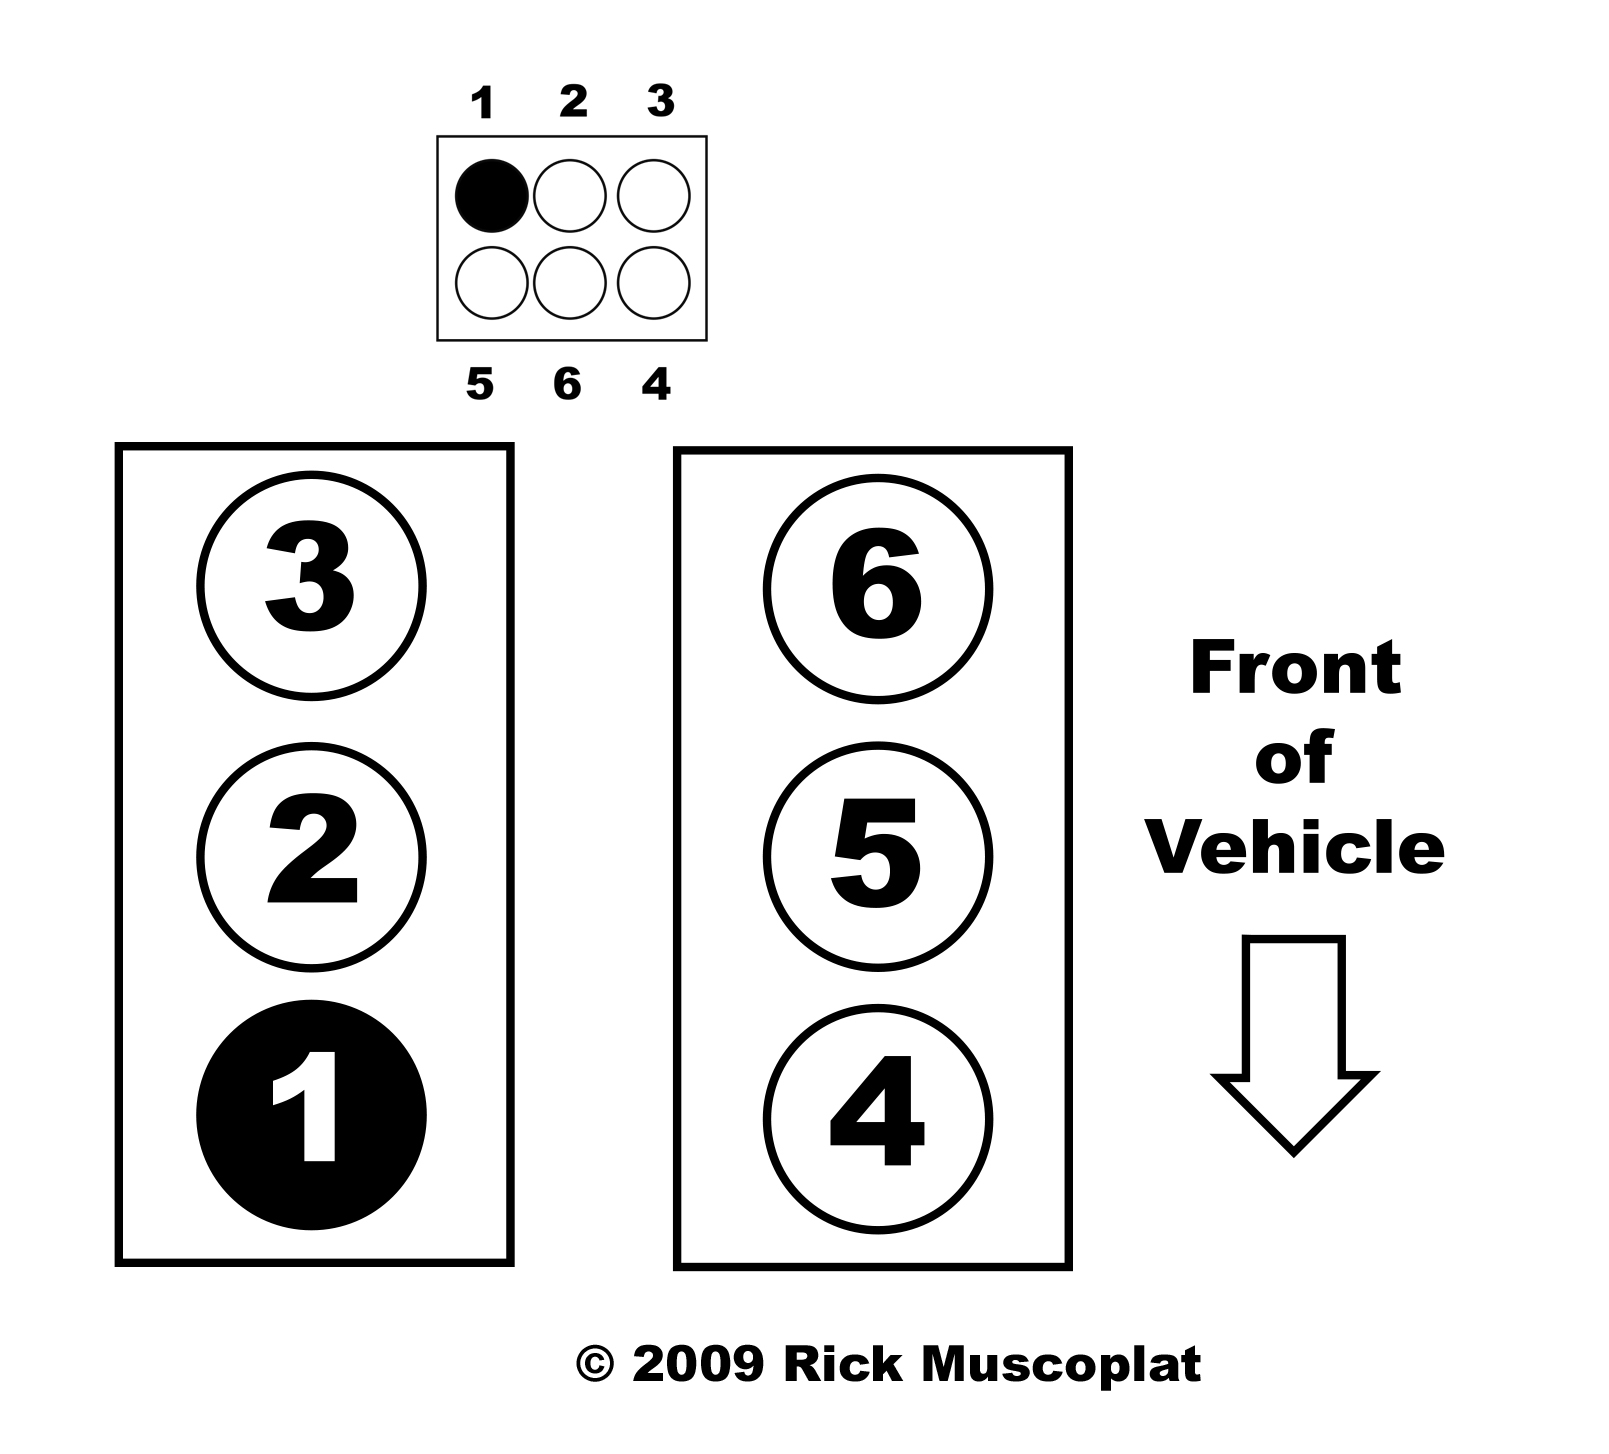 [ZSVE_7041]  2008 Ford Explorer 4.0L Firing Order — Ricks Free Auto Repair Advice Ricks  Free Auto Repair Advice | Automotive Repair Tips and How-To | Ford Mustang Wiring Diagram Explorer 4 0 Firing |  | Rick's Free Auto Repair Advice